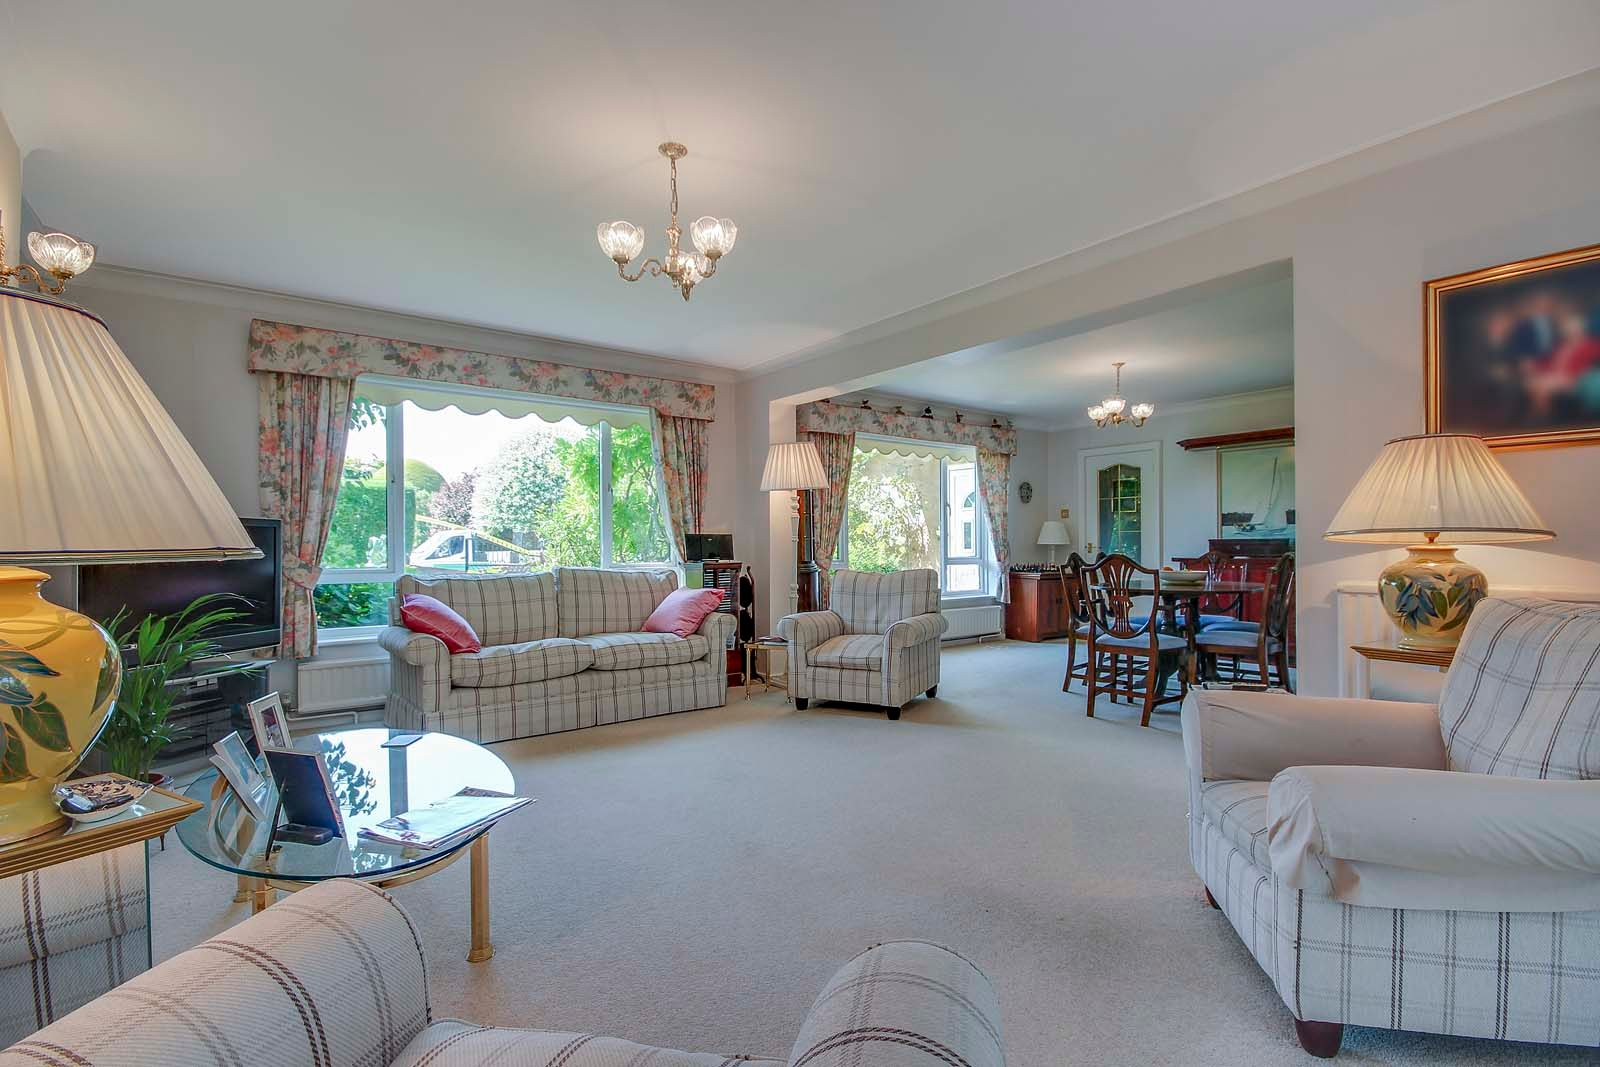 5 bed House for sale in The Willowhayne, East Preston - Sitting room (Property Image 11)